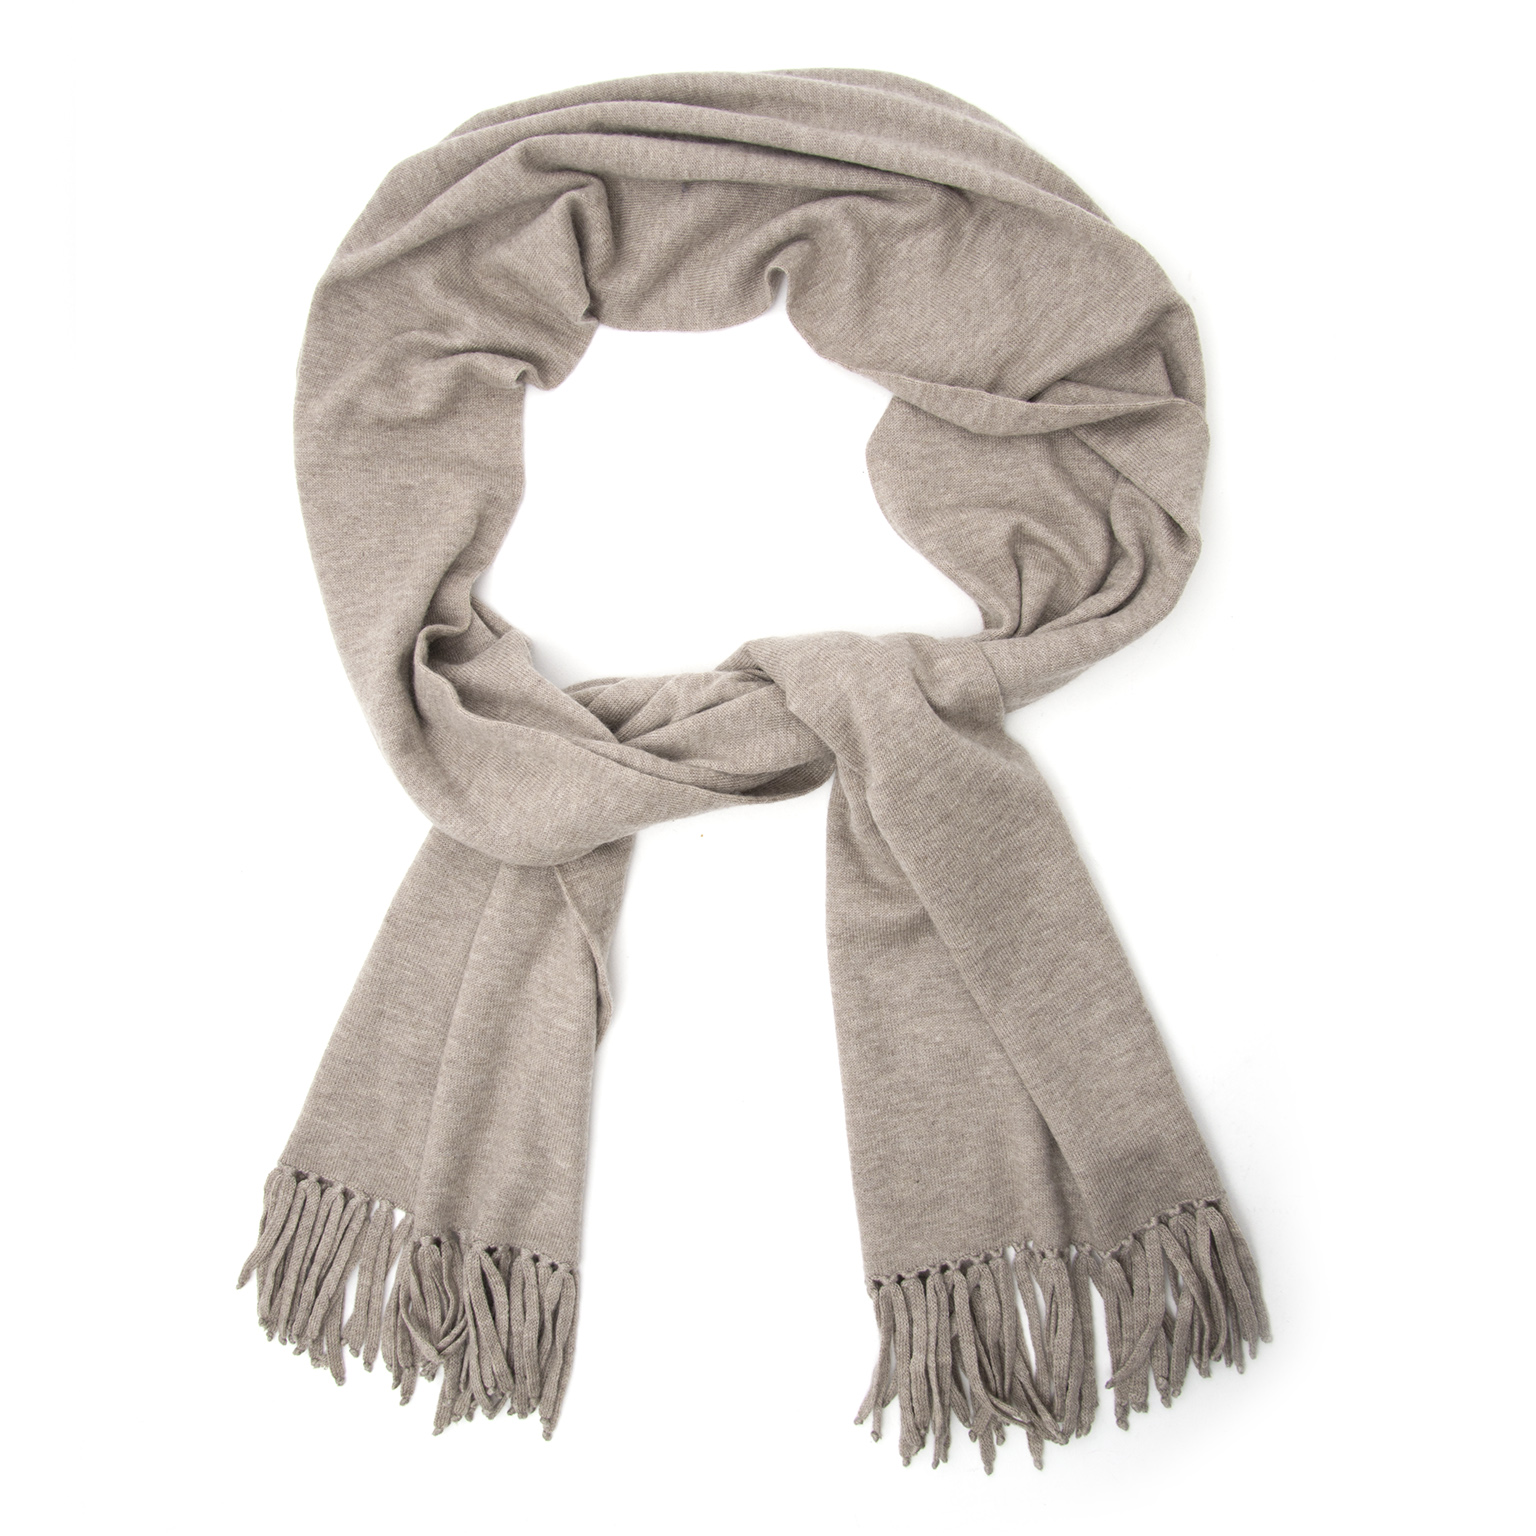 Buy a secondhand Hermes Taupe 100% Cashmere at the right price